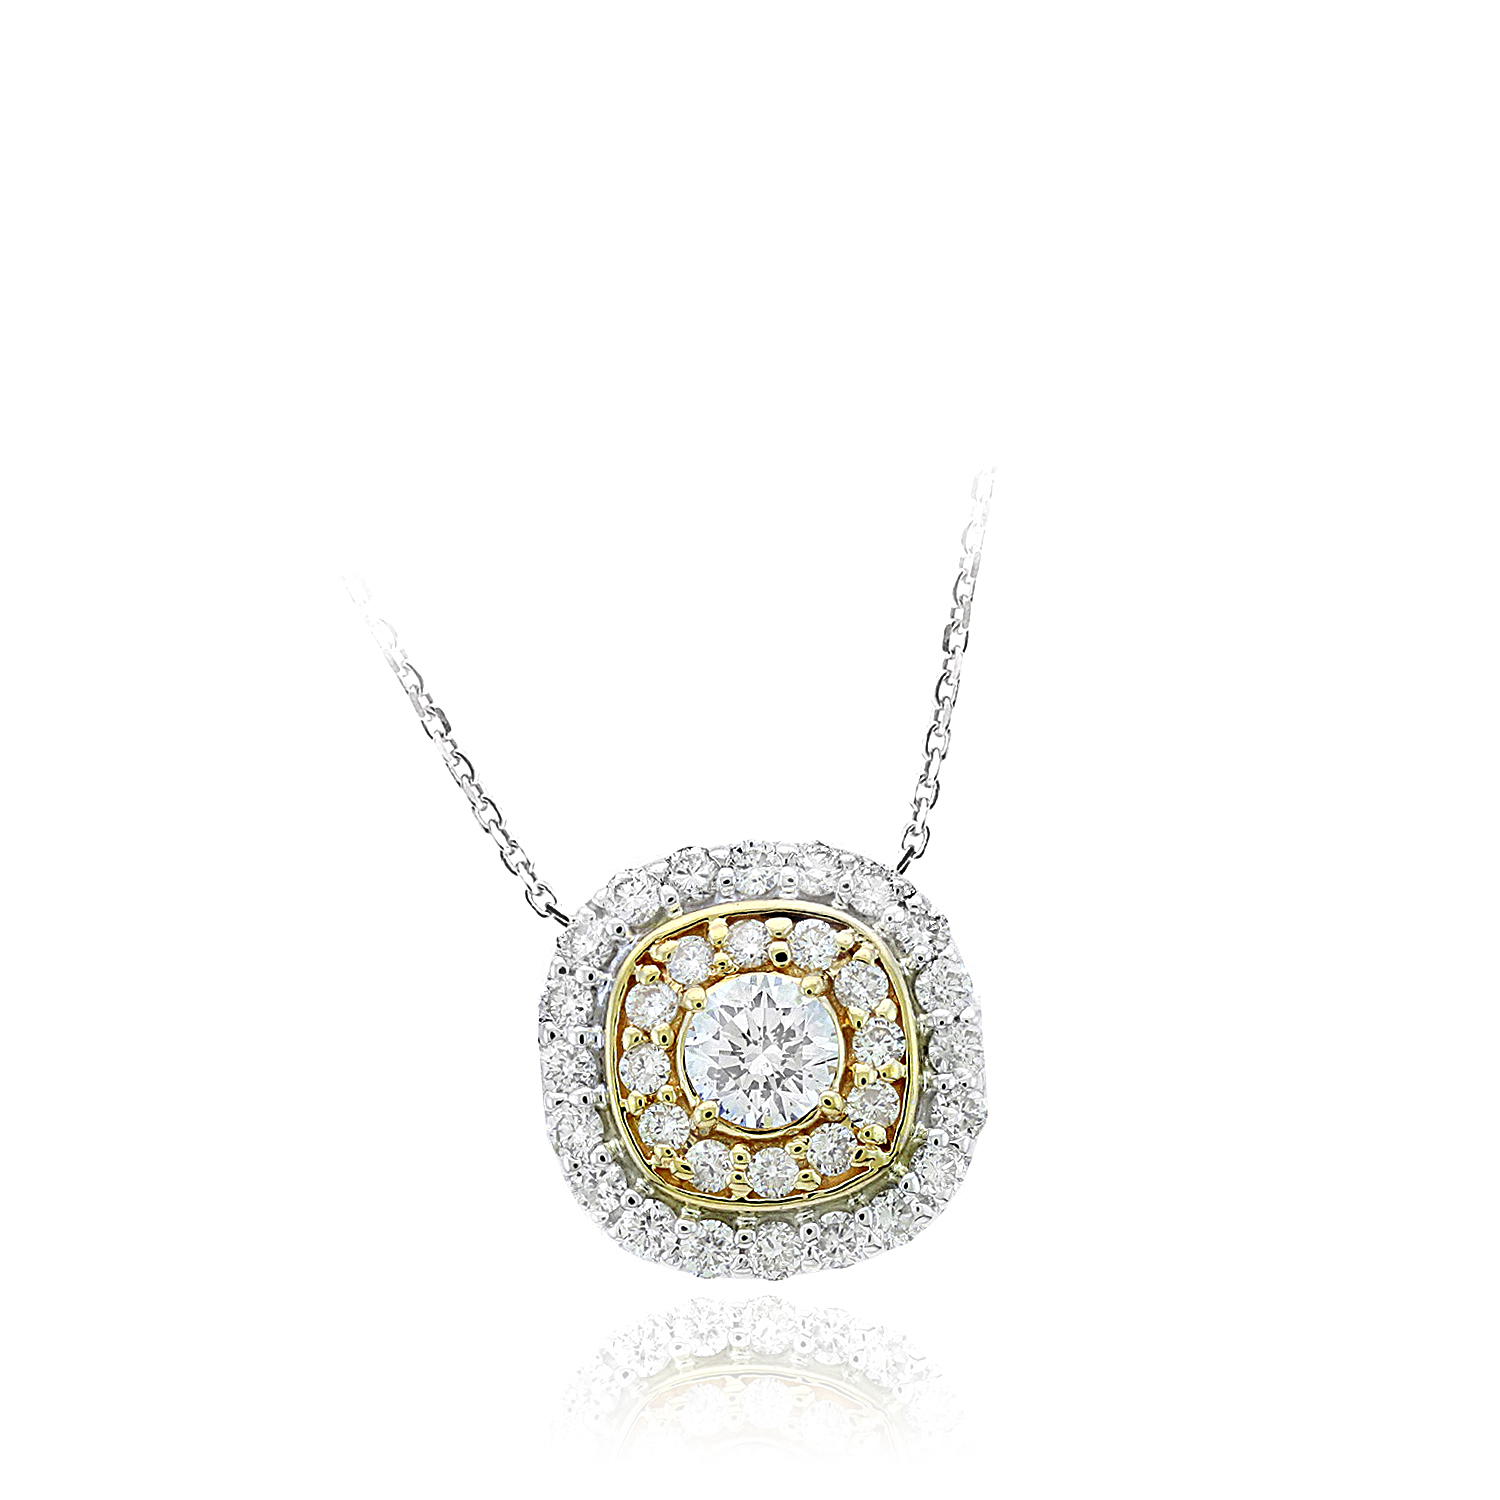 Ryan Gems 14 Karat Yellow and White Gold Diamond Pendant Necklace